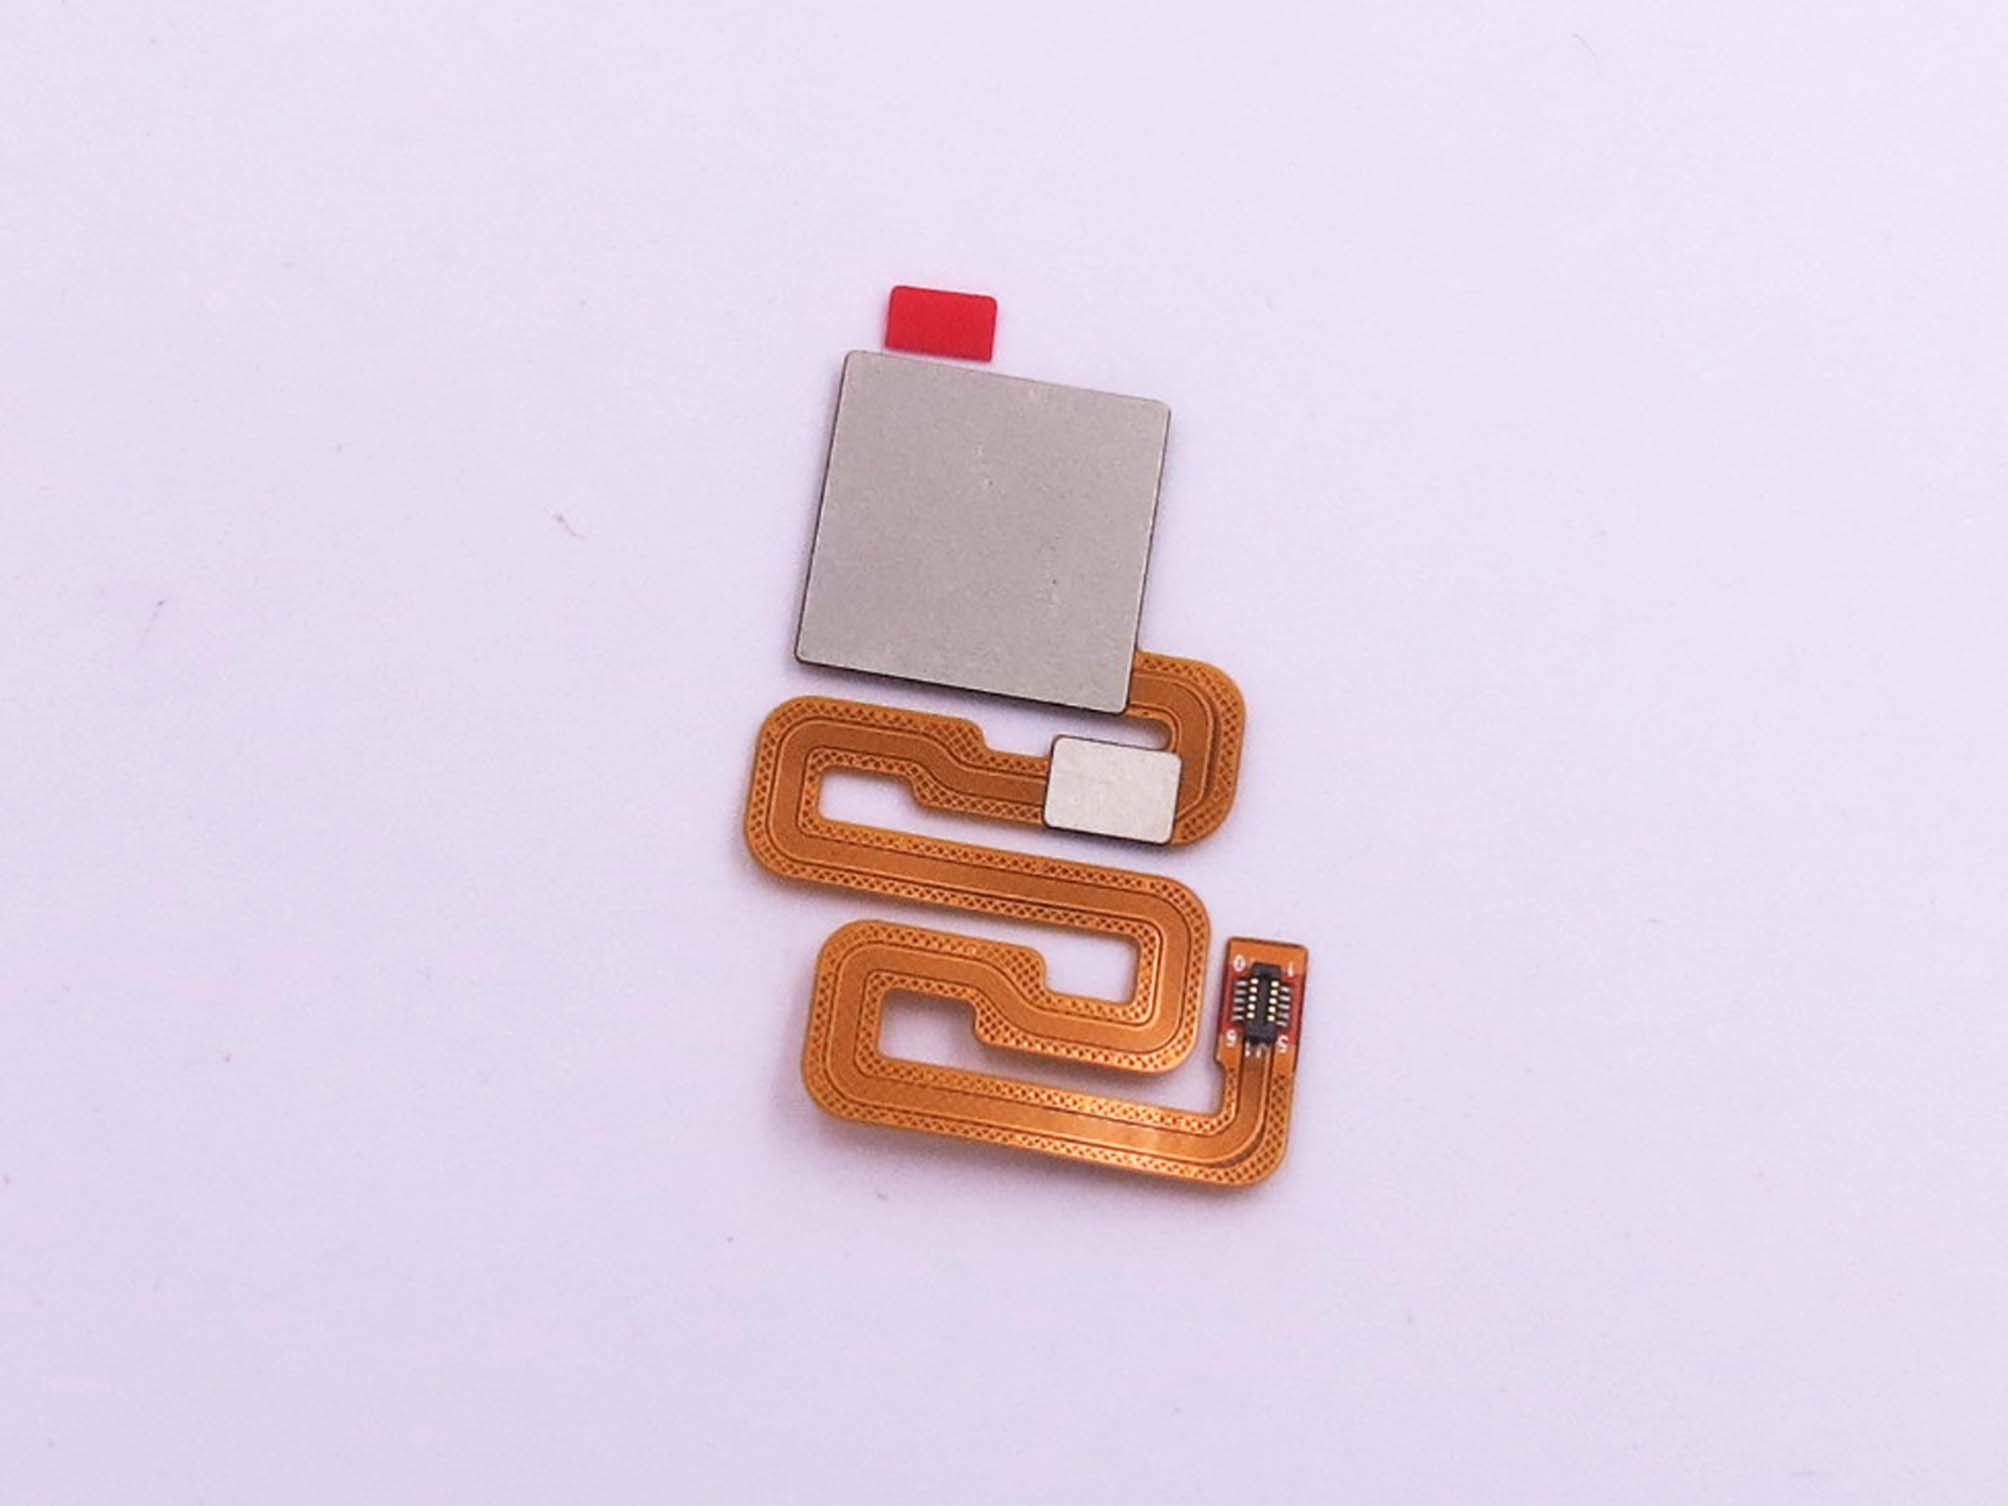 Original Fingerprint sensor flex cable for Redmi 3s - Silver